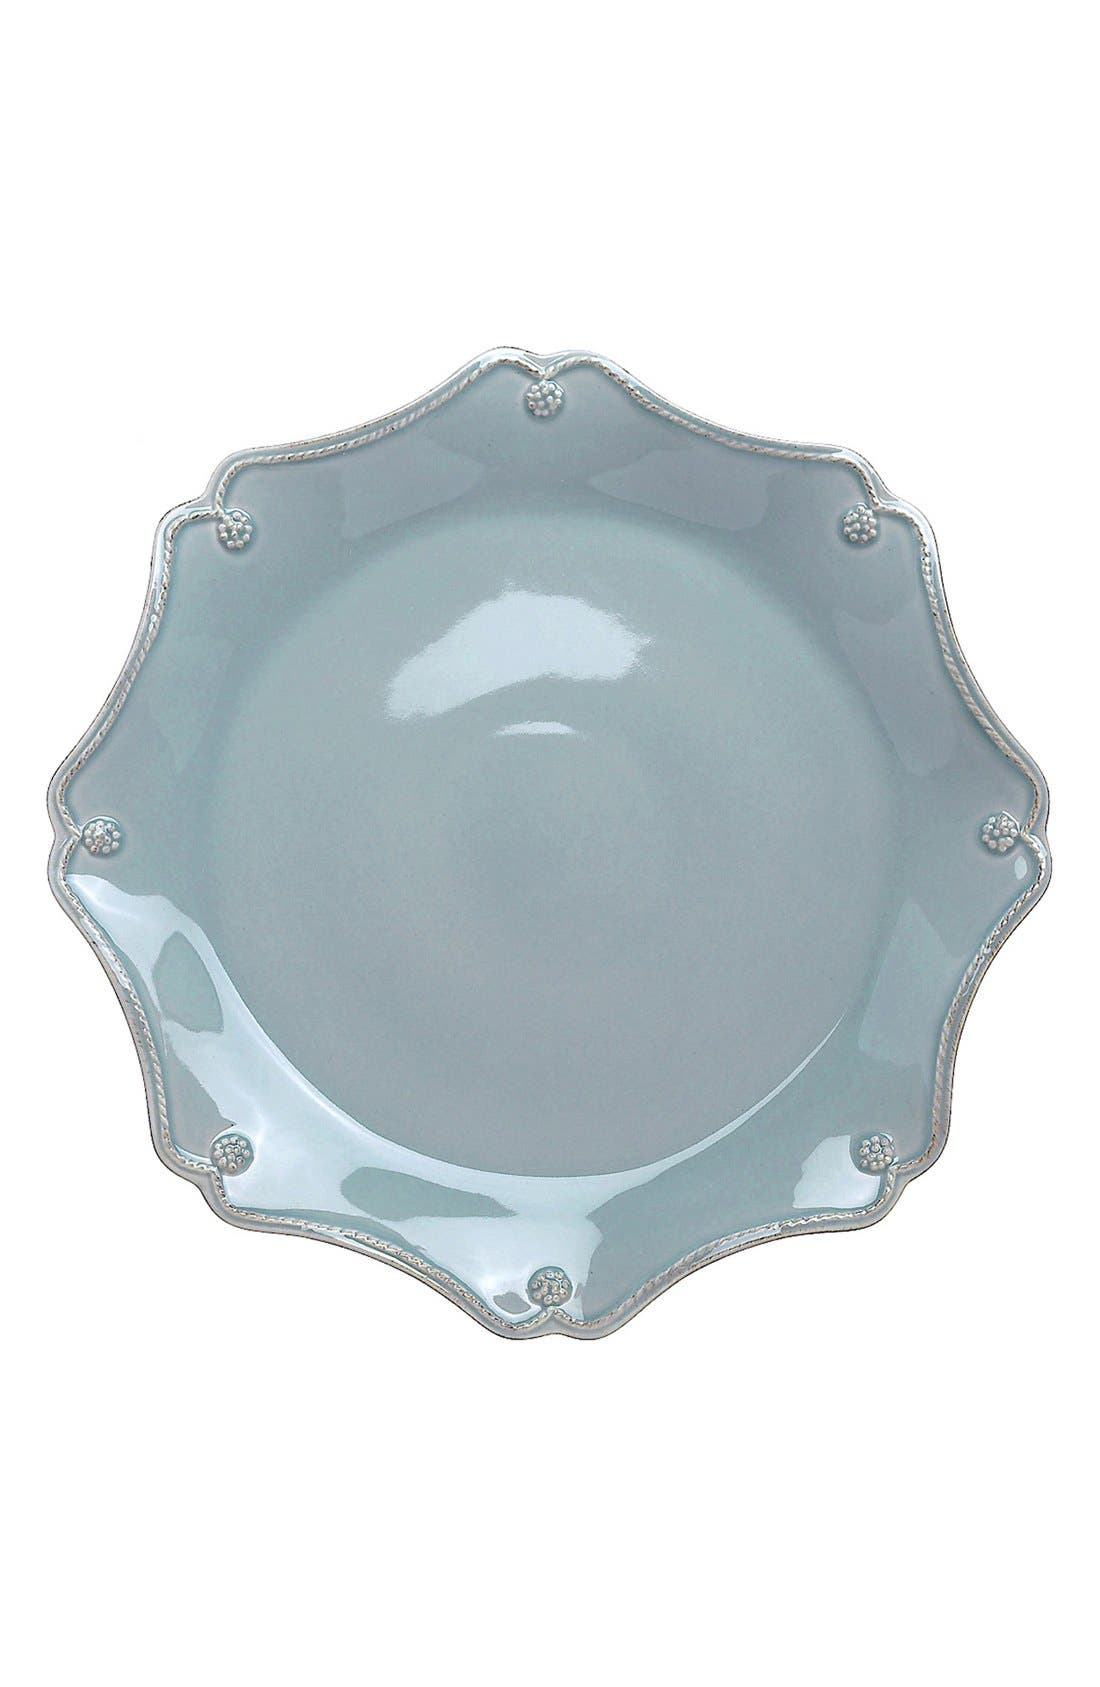 Juliska'Berry and Thread' Scallop Charger Plate